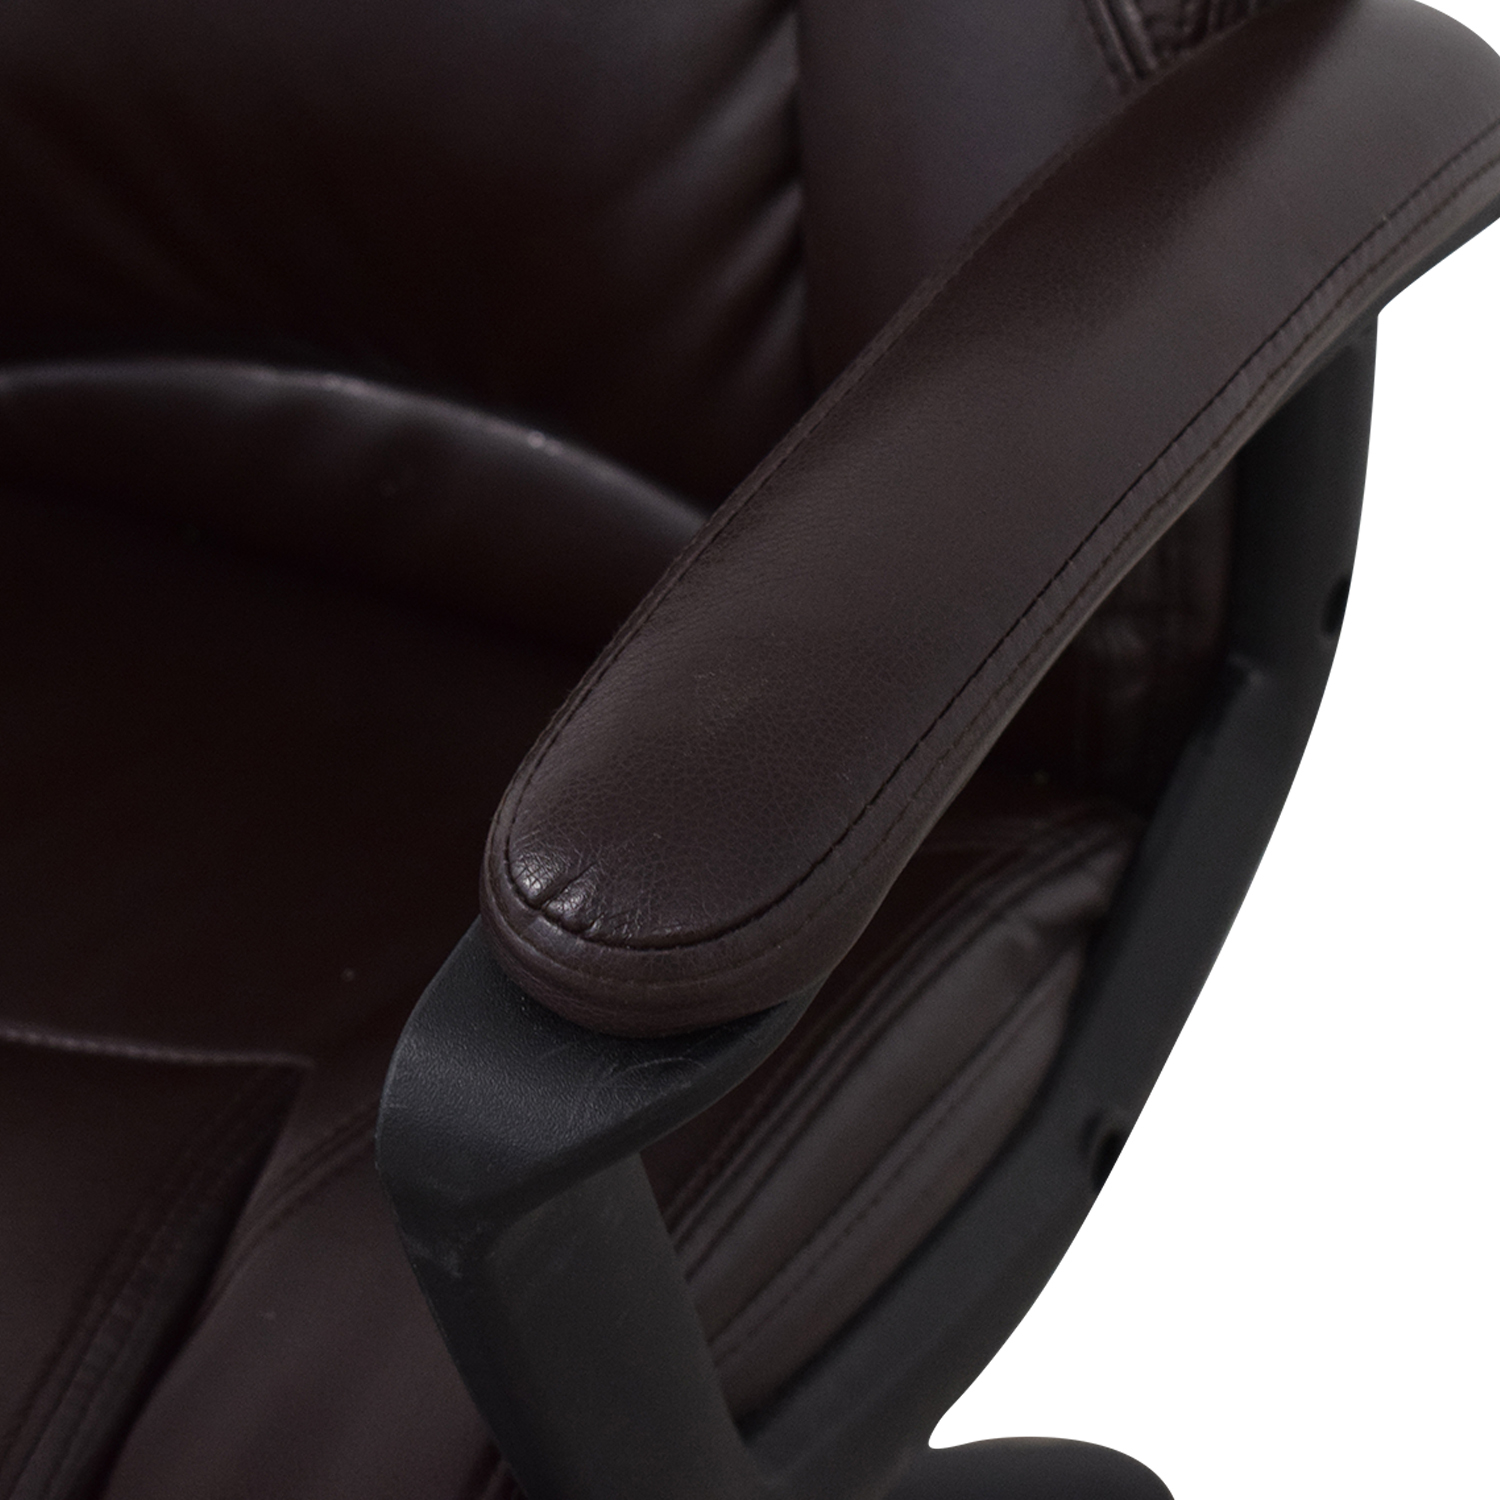 Raymour & Flanigan Raymour & Flanigan Chair and Desk price